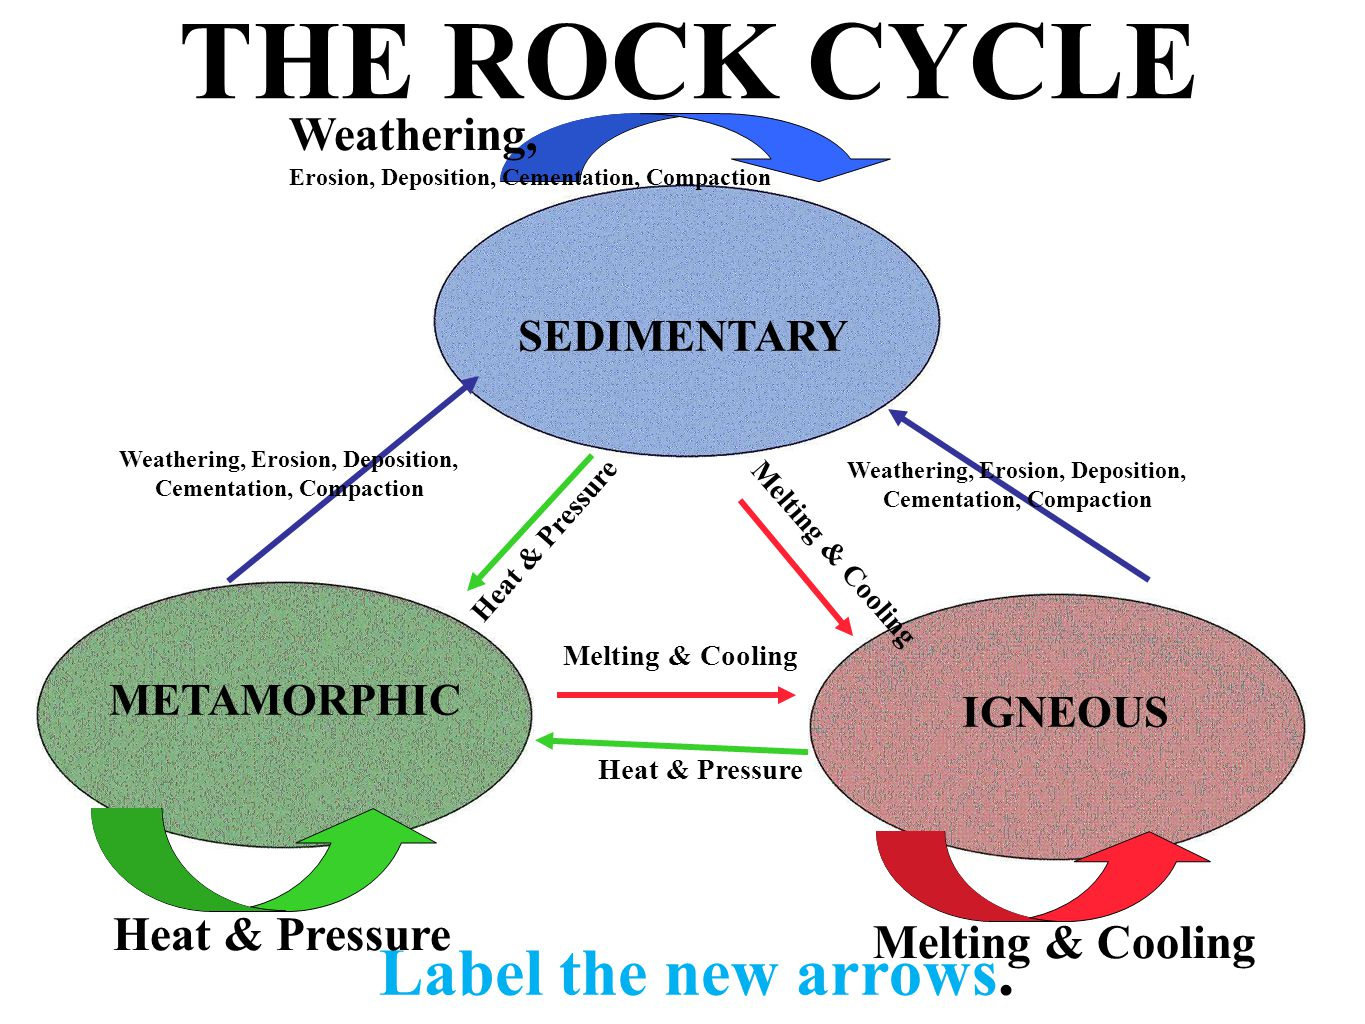 THE ROCK CYCLE Label the new arrows. SEDIMENTARY METAMORPHIC Heat & Pressure IGNEOUS Heat & Pressure Weathering, Erosion, Deposition, Cementation, Com